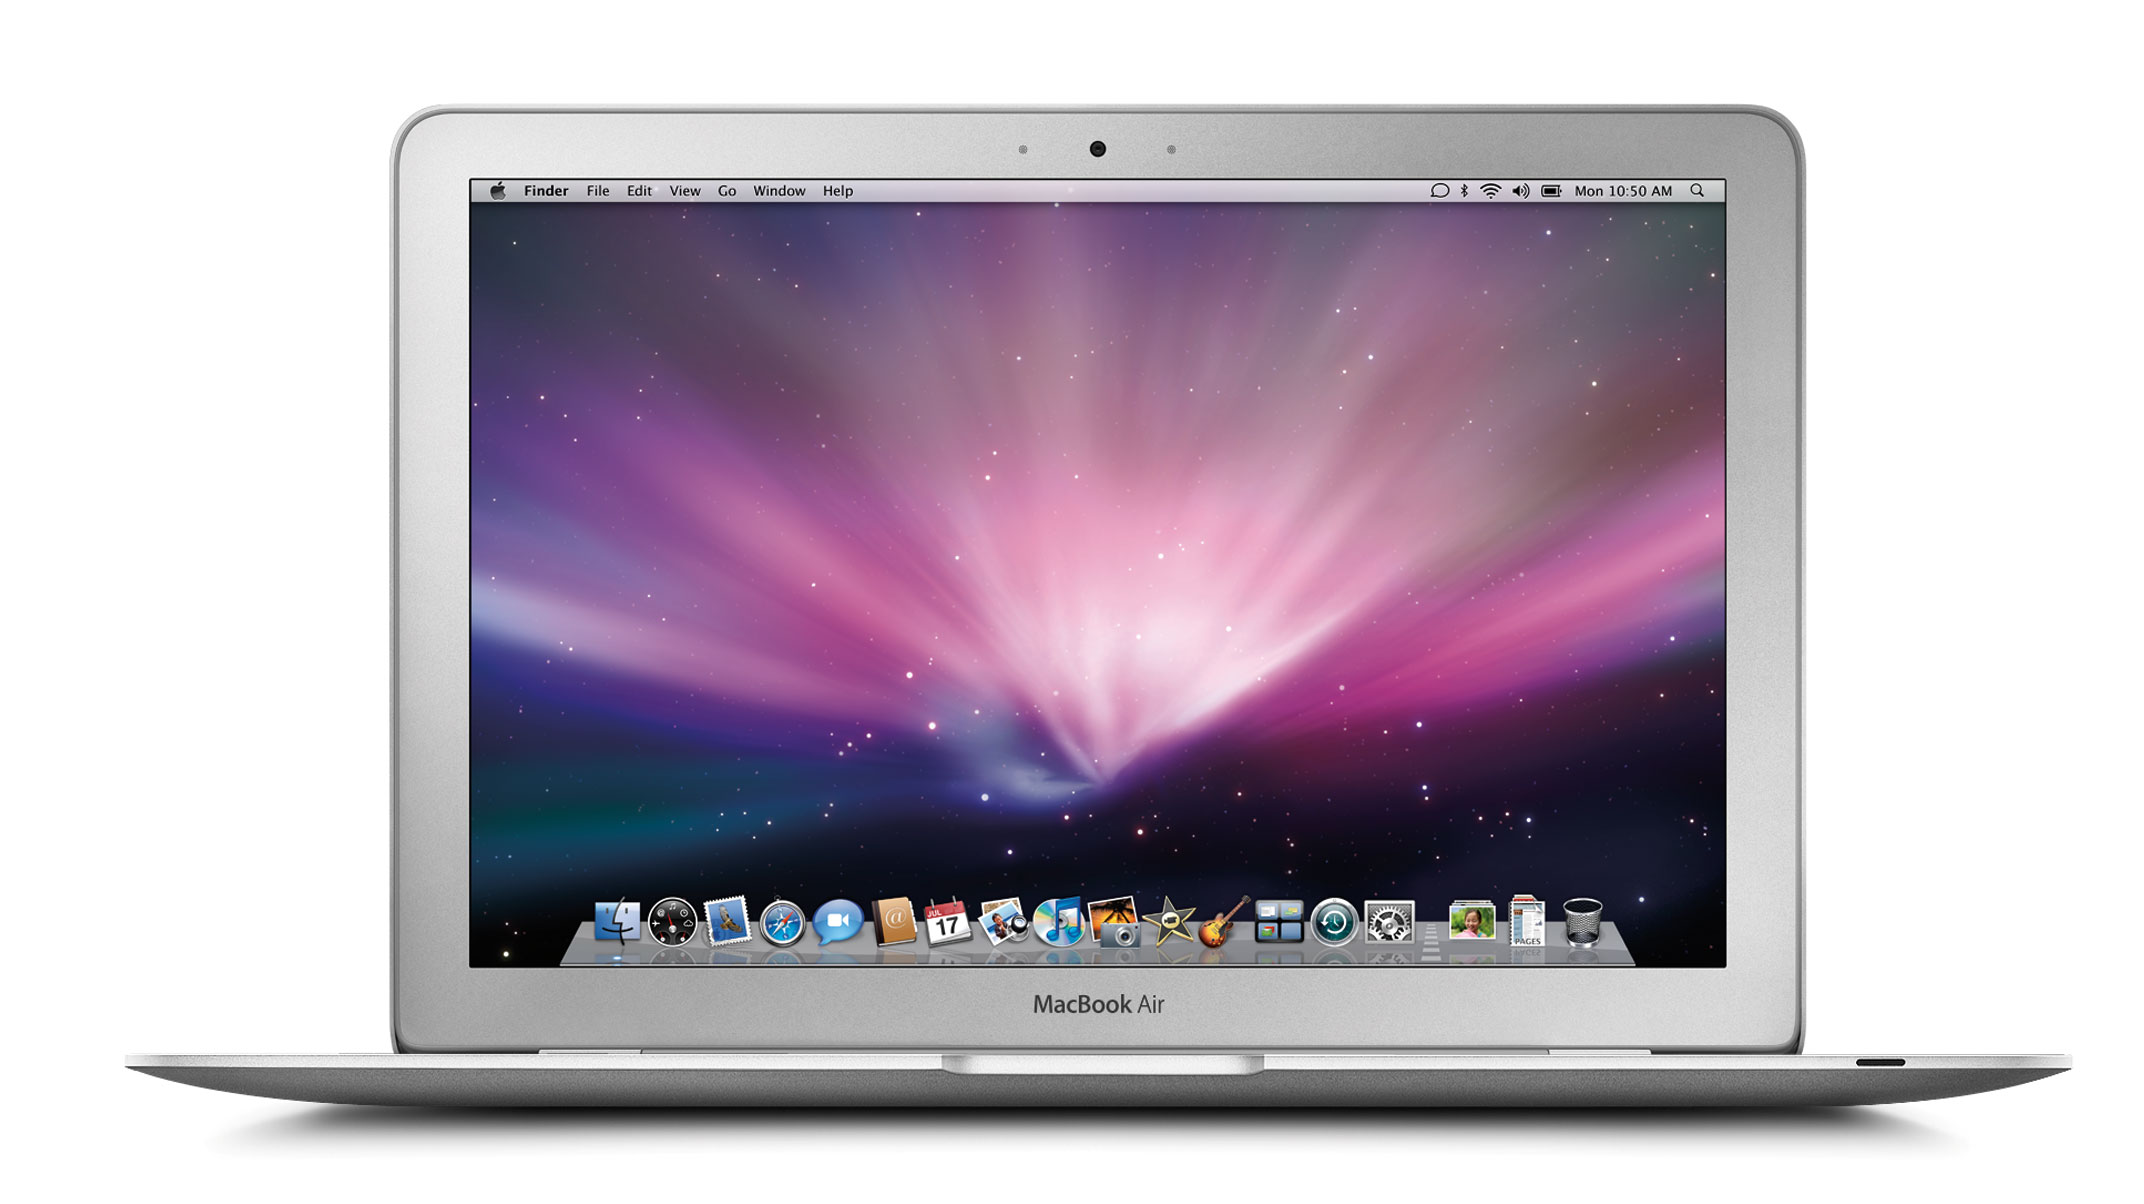 macbook-air-large-image.jpg